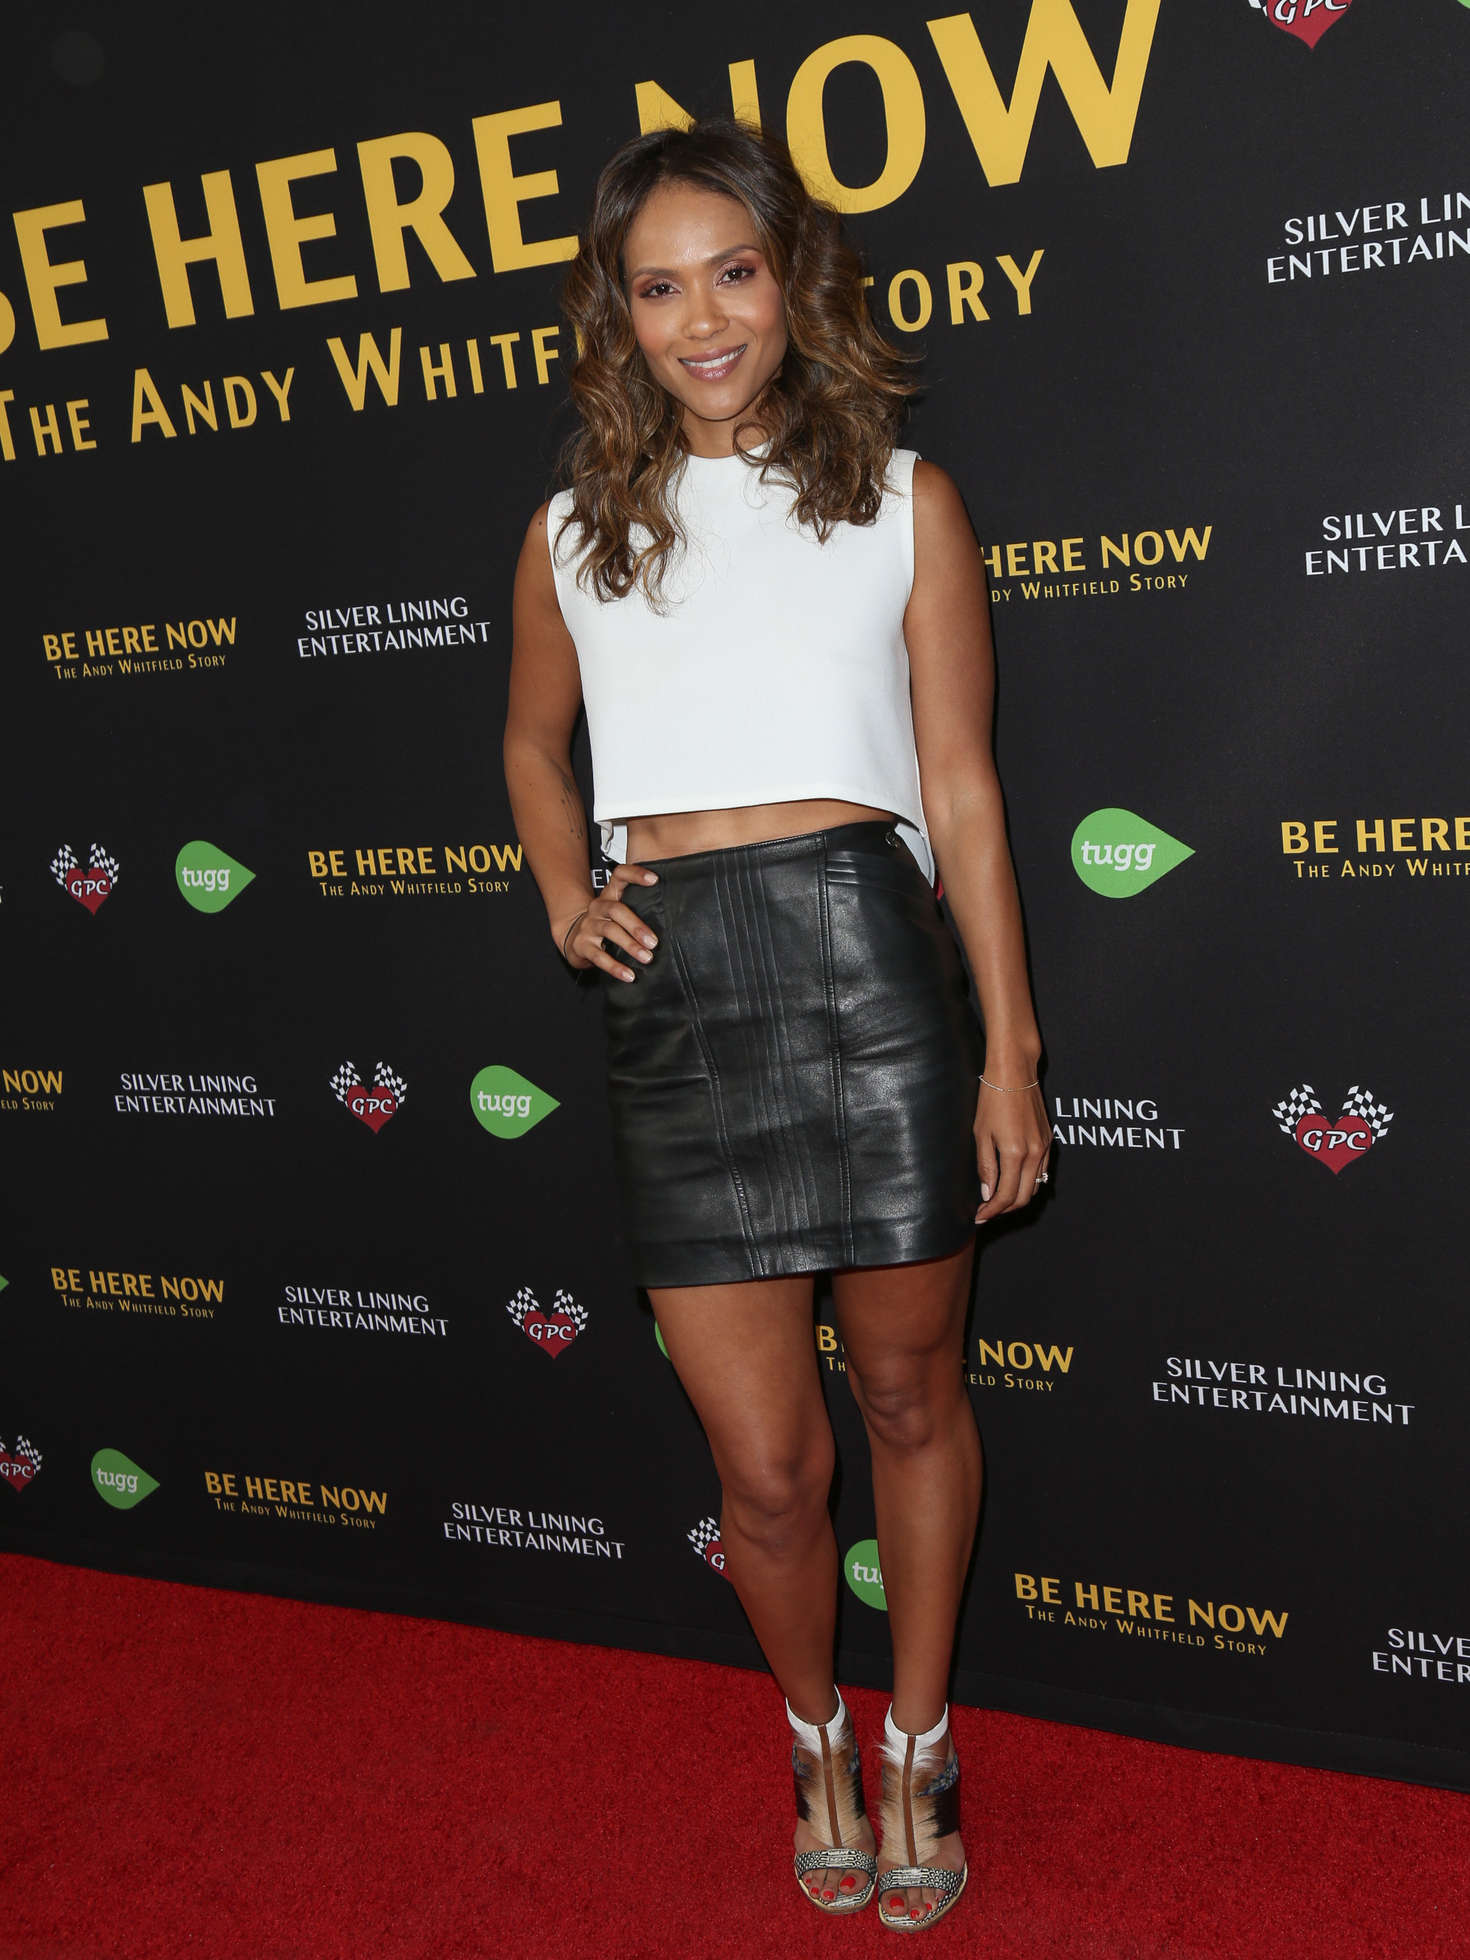 Lesley Ann Brandt Be Here Now Premiere in Los Angeles